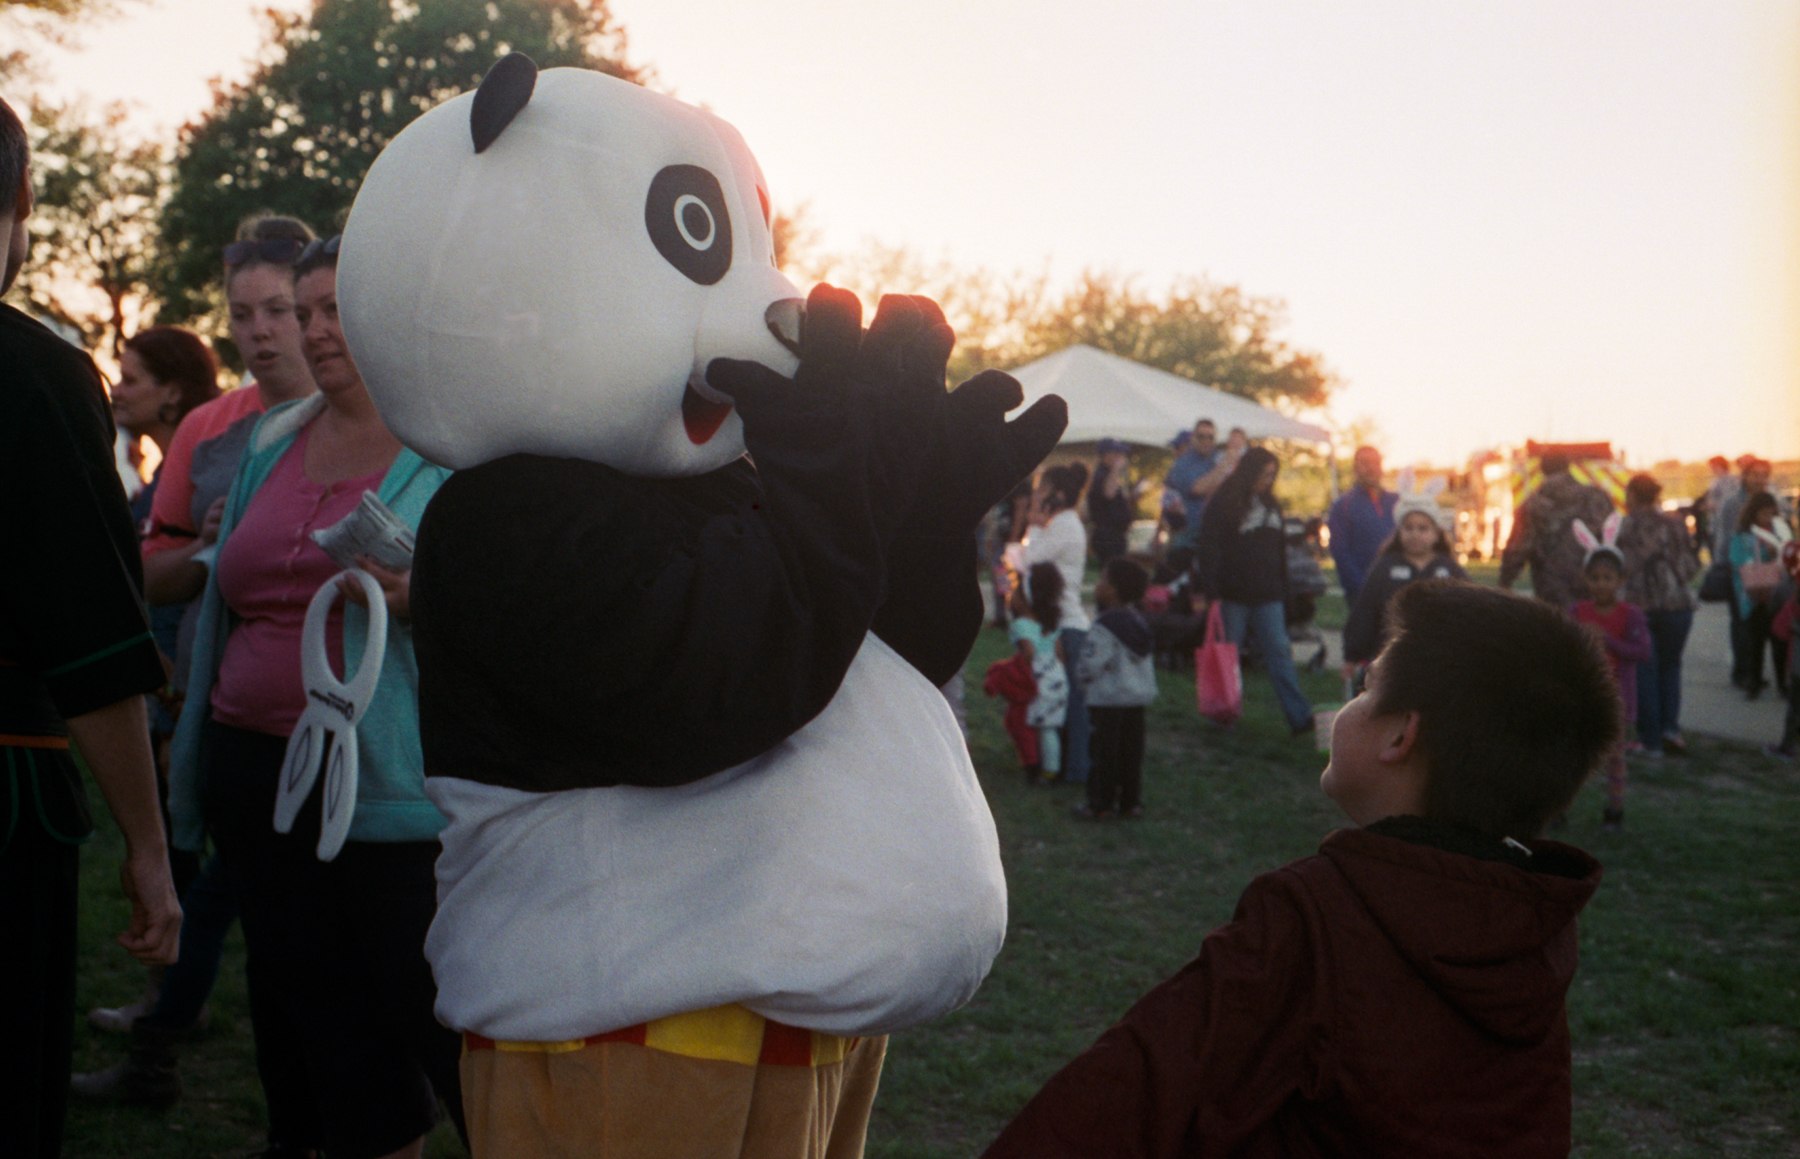 egg hunt panda sm (1 of 1).jpg